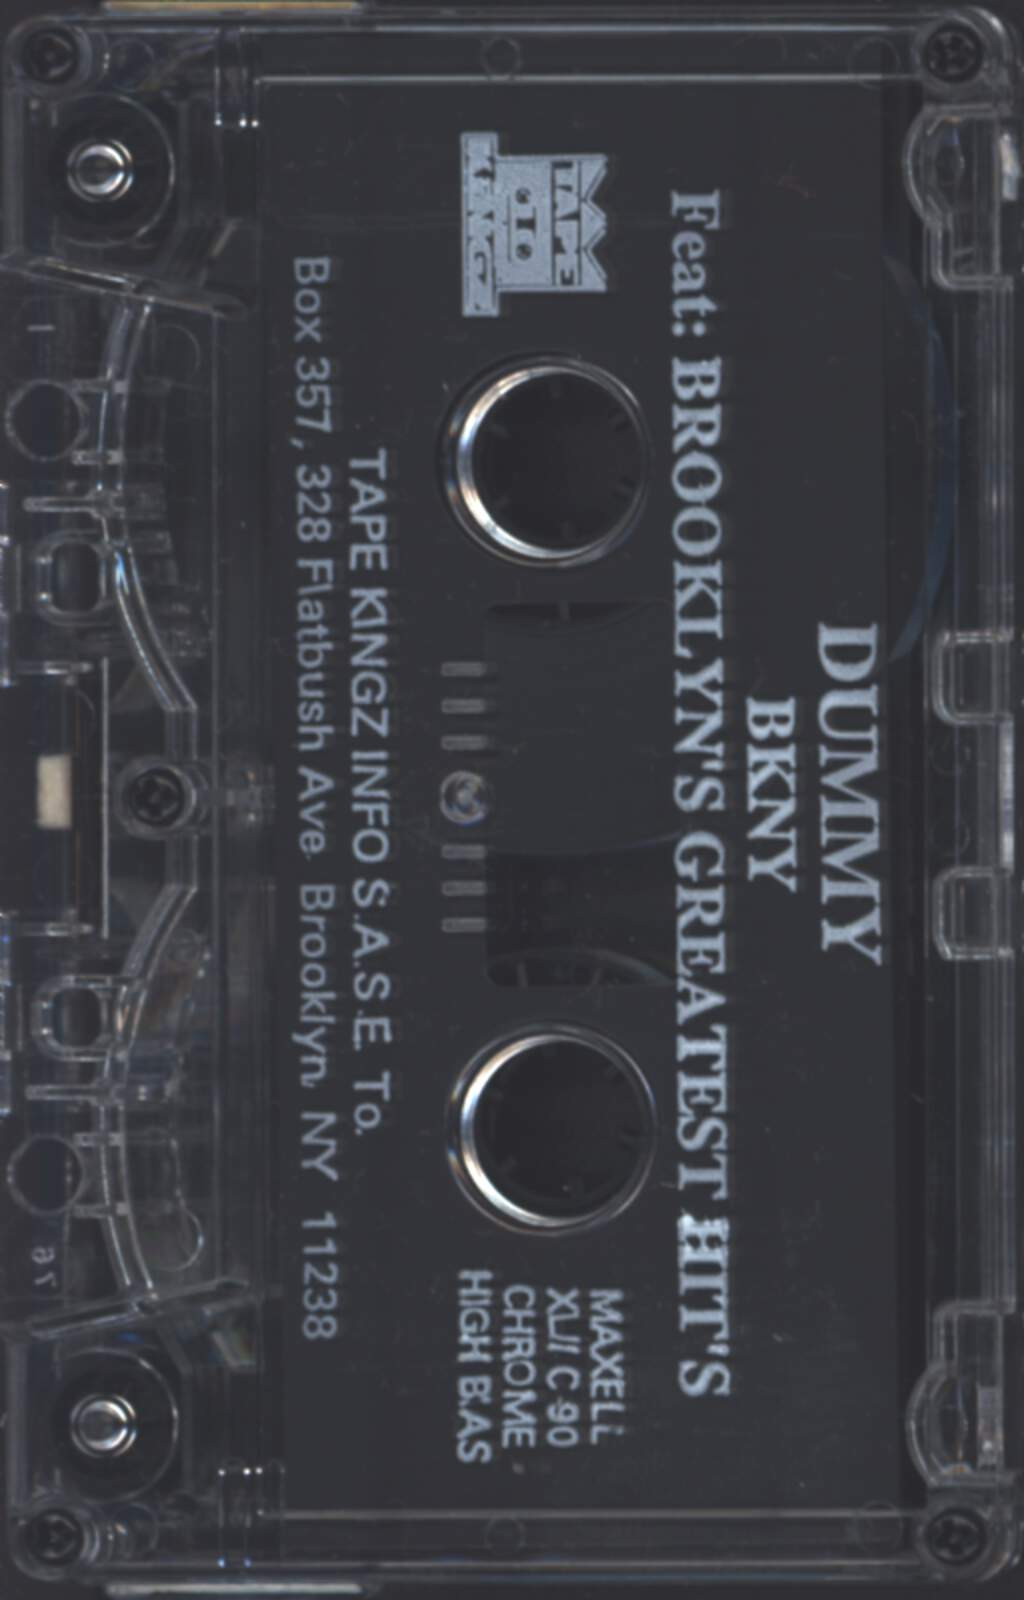 DJ Dummy: BKNY (Brooklyn's Greatest Hits), Compact Cassette